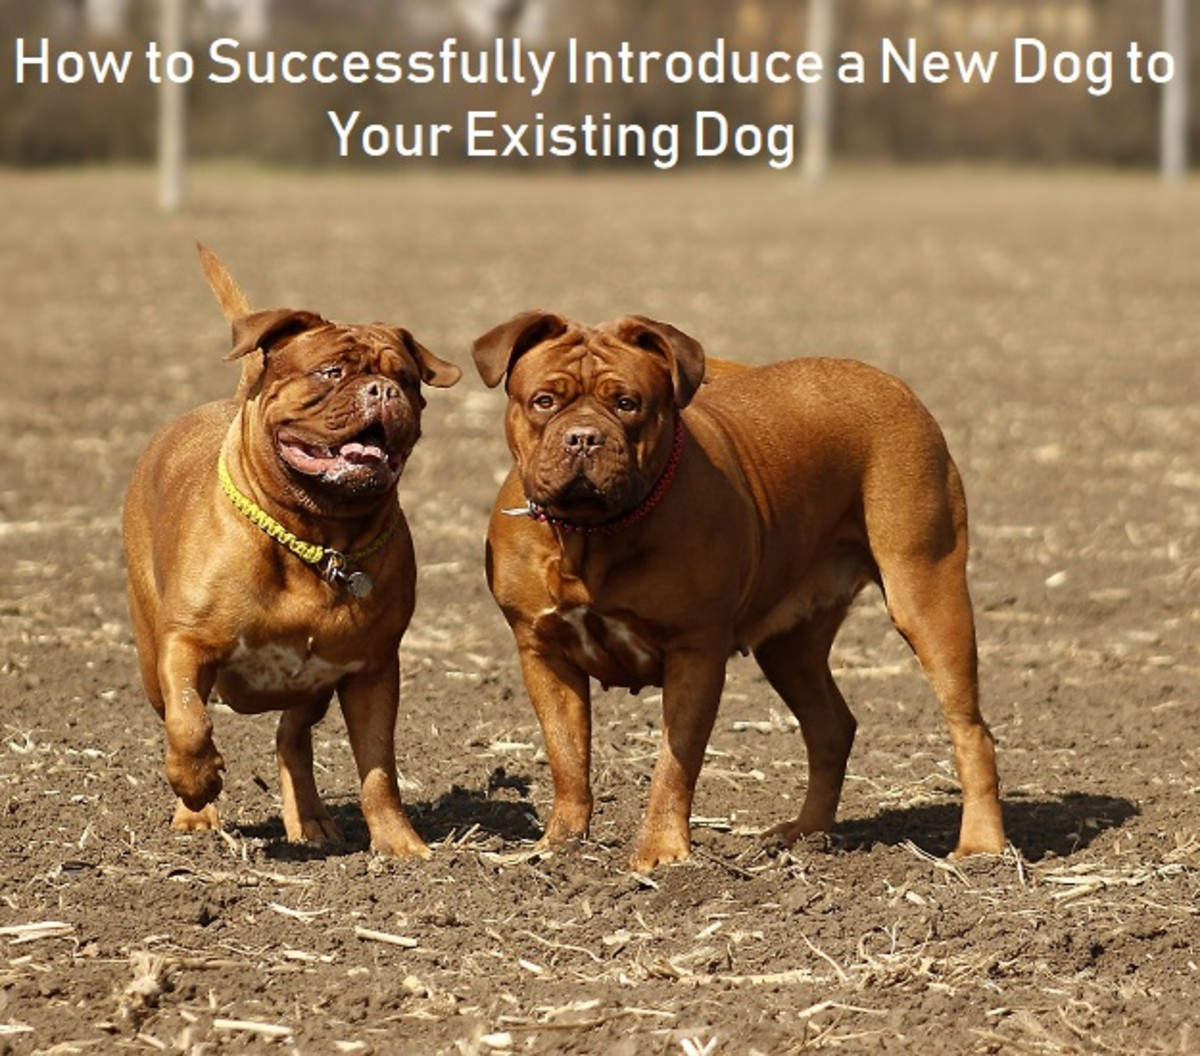 How to Successfully Introduce a New Dog to Your Current Dog